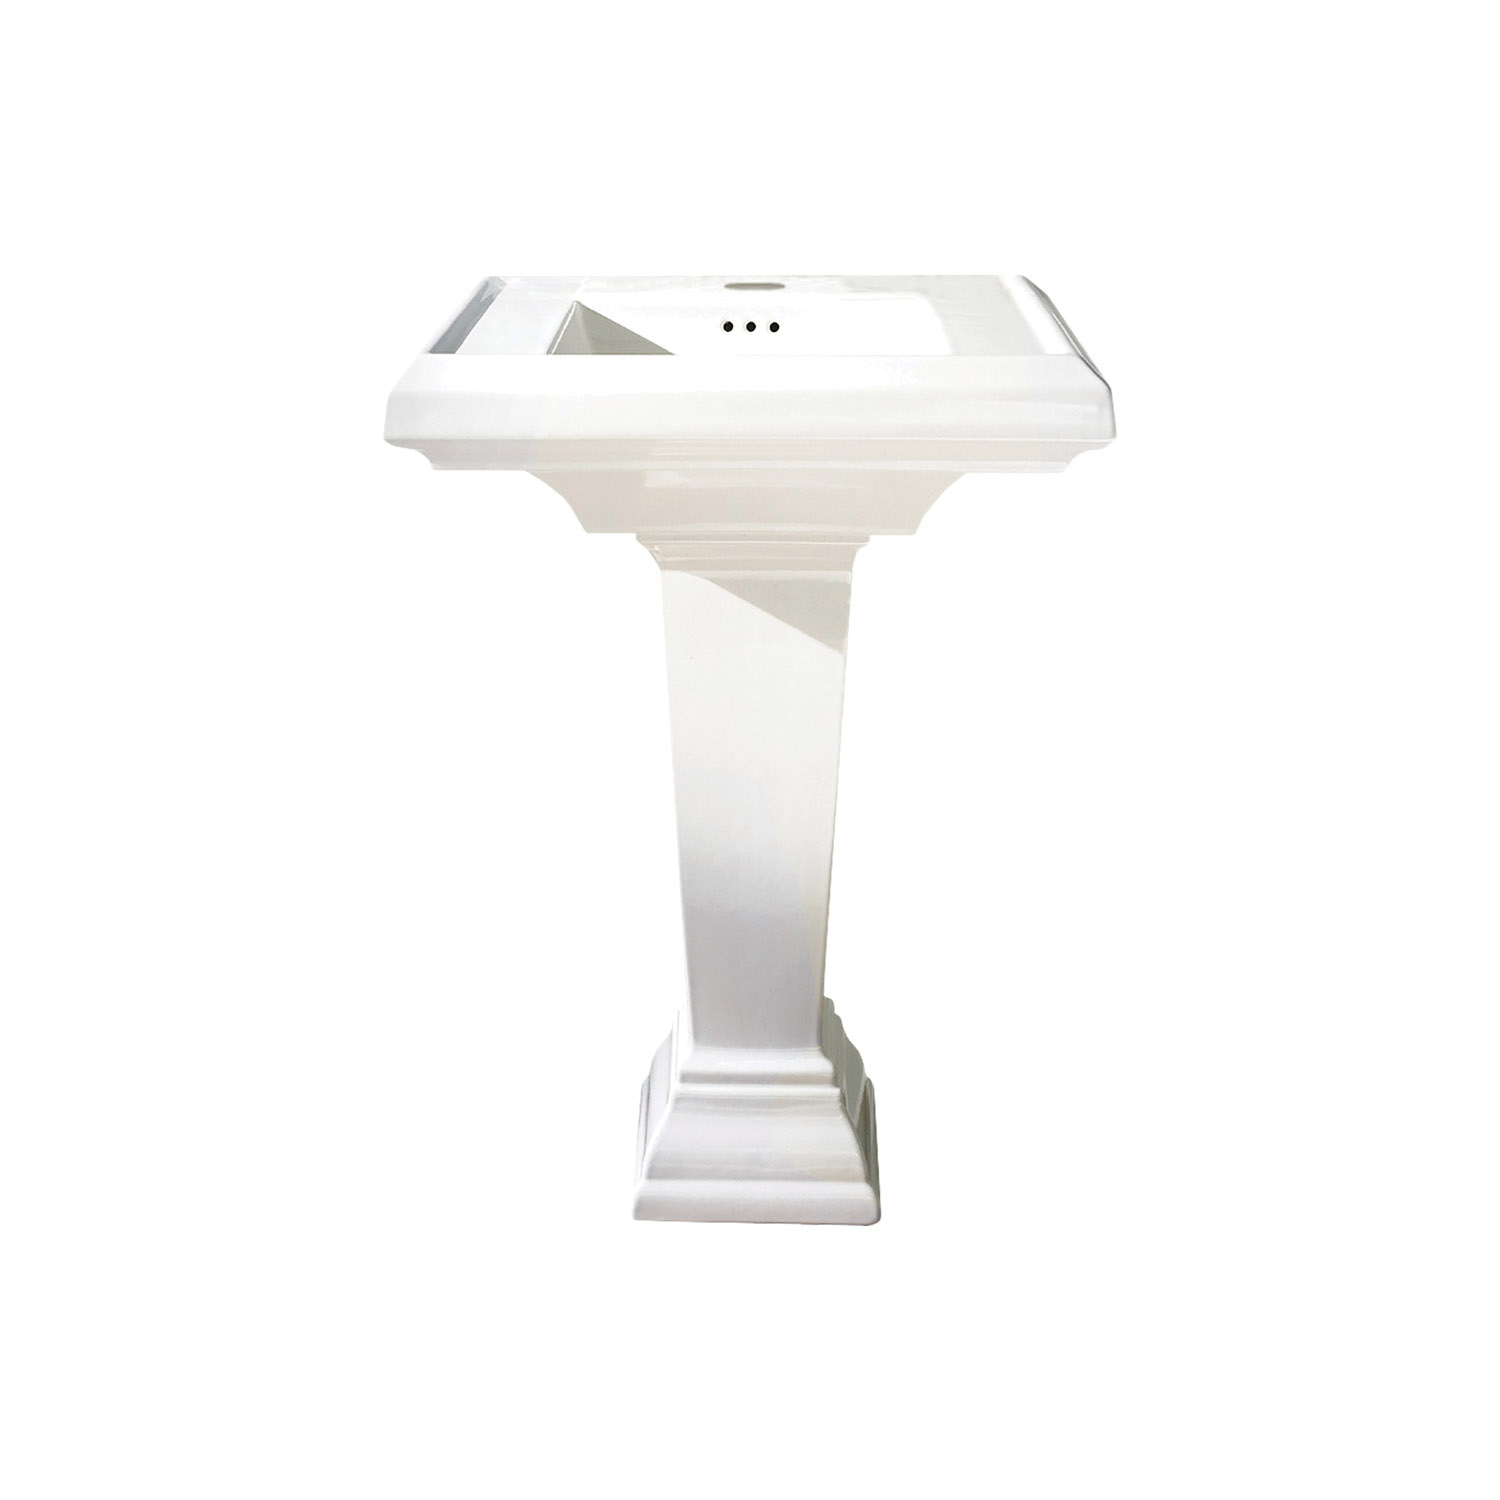 American Standard 0031.000.222 Pedestal, Vitreous China, Import